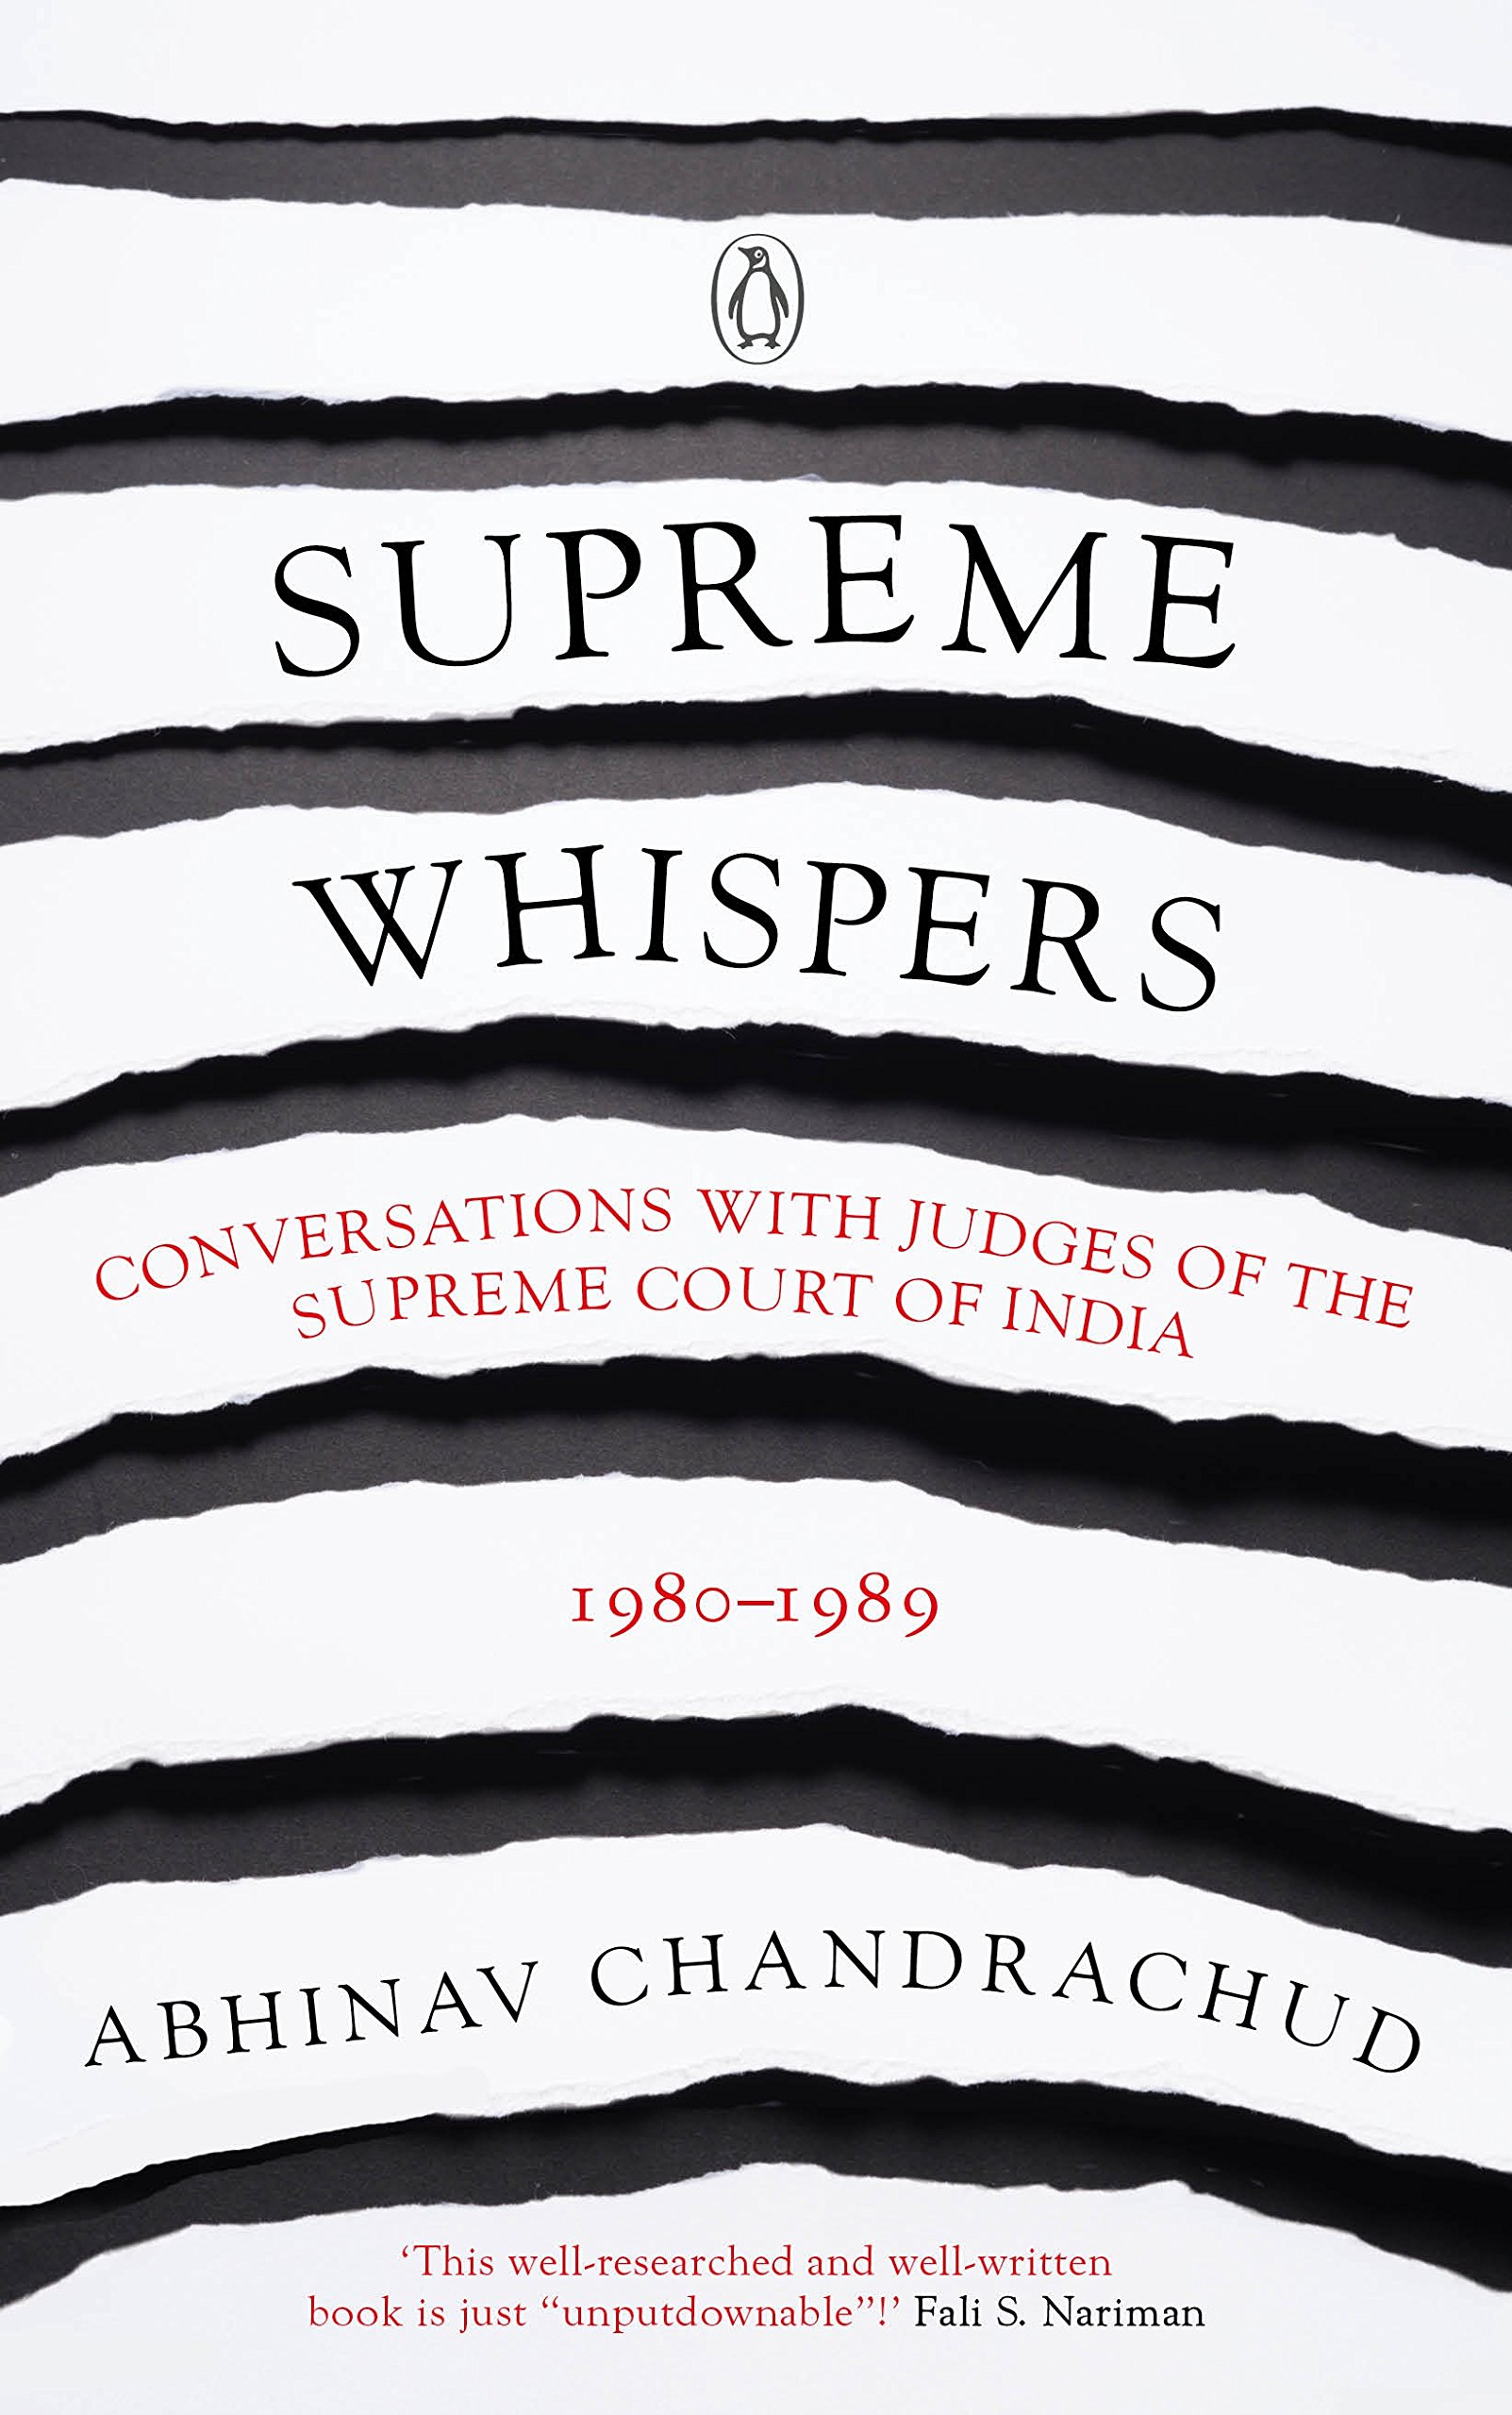 Book Review: 'Supreme Whispers: Supreme Court Judges, 1980-90' by Abhinav Chandrachud